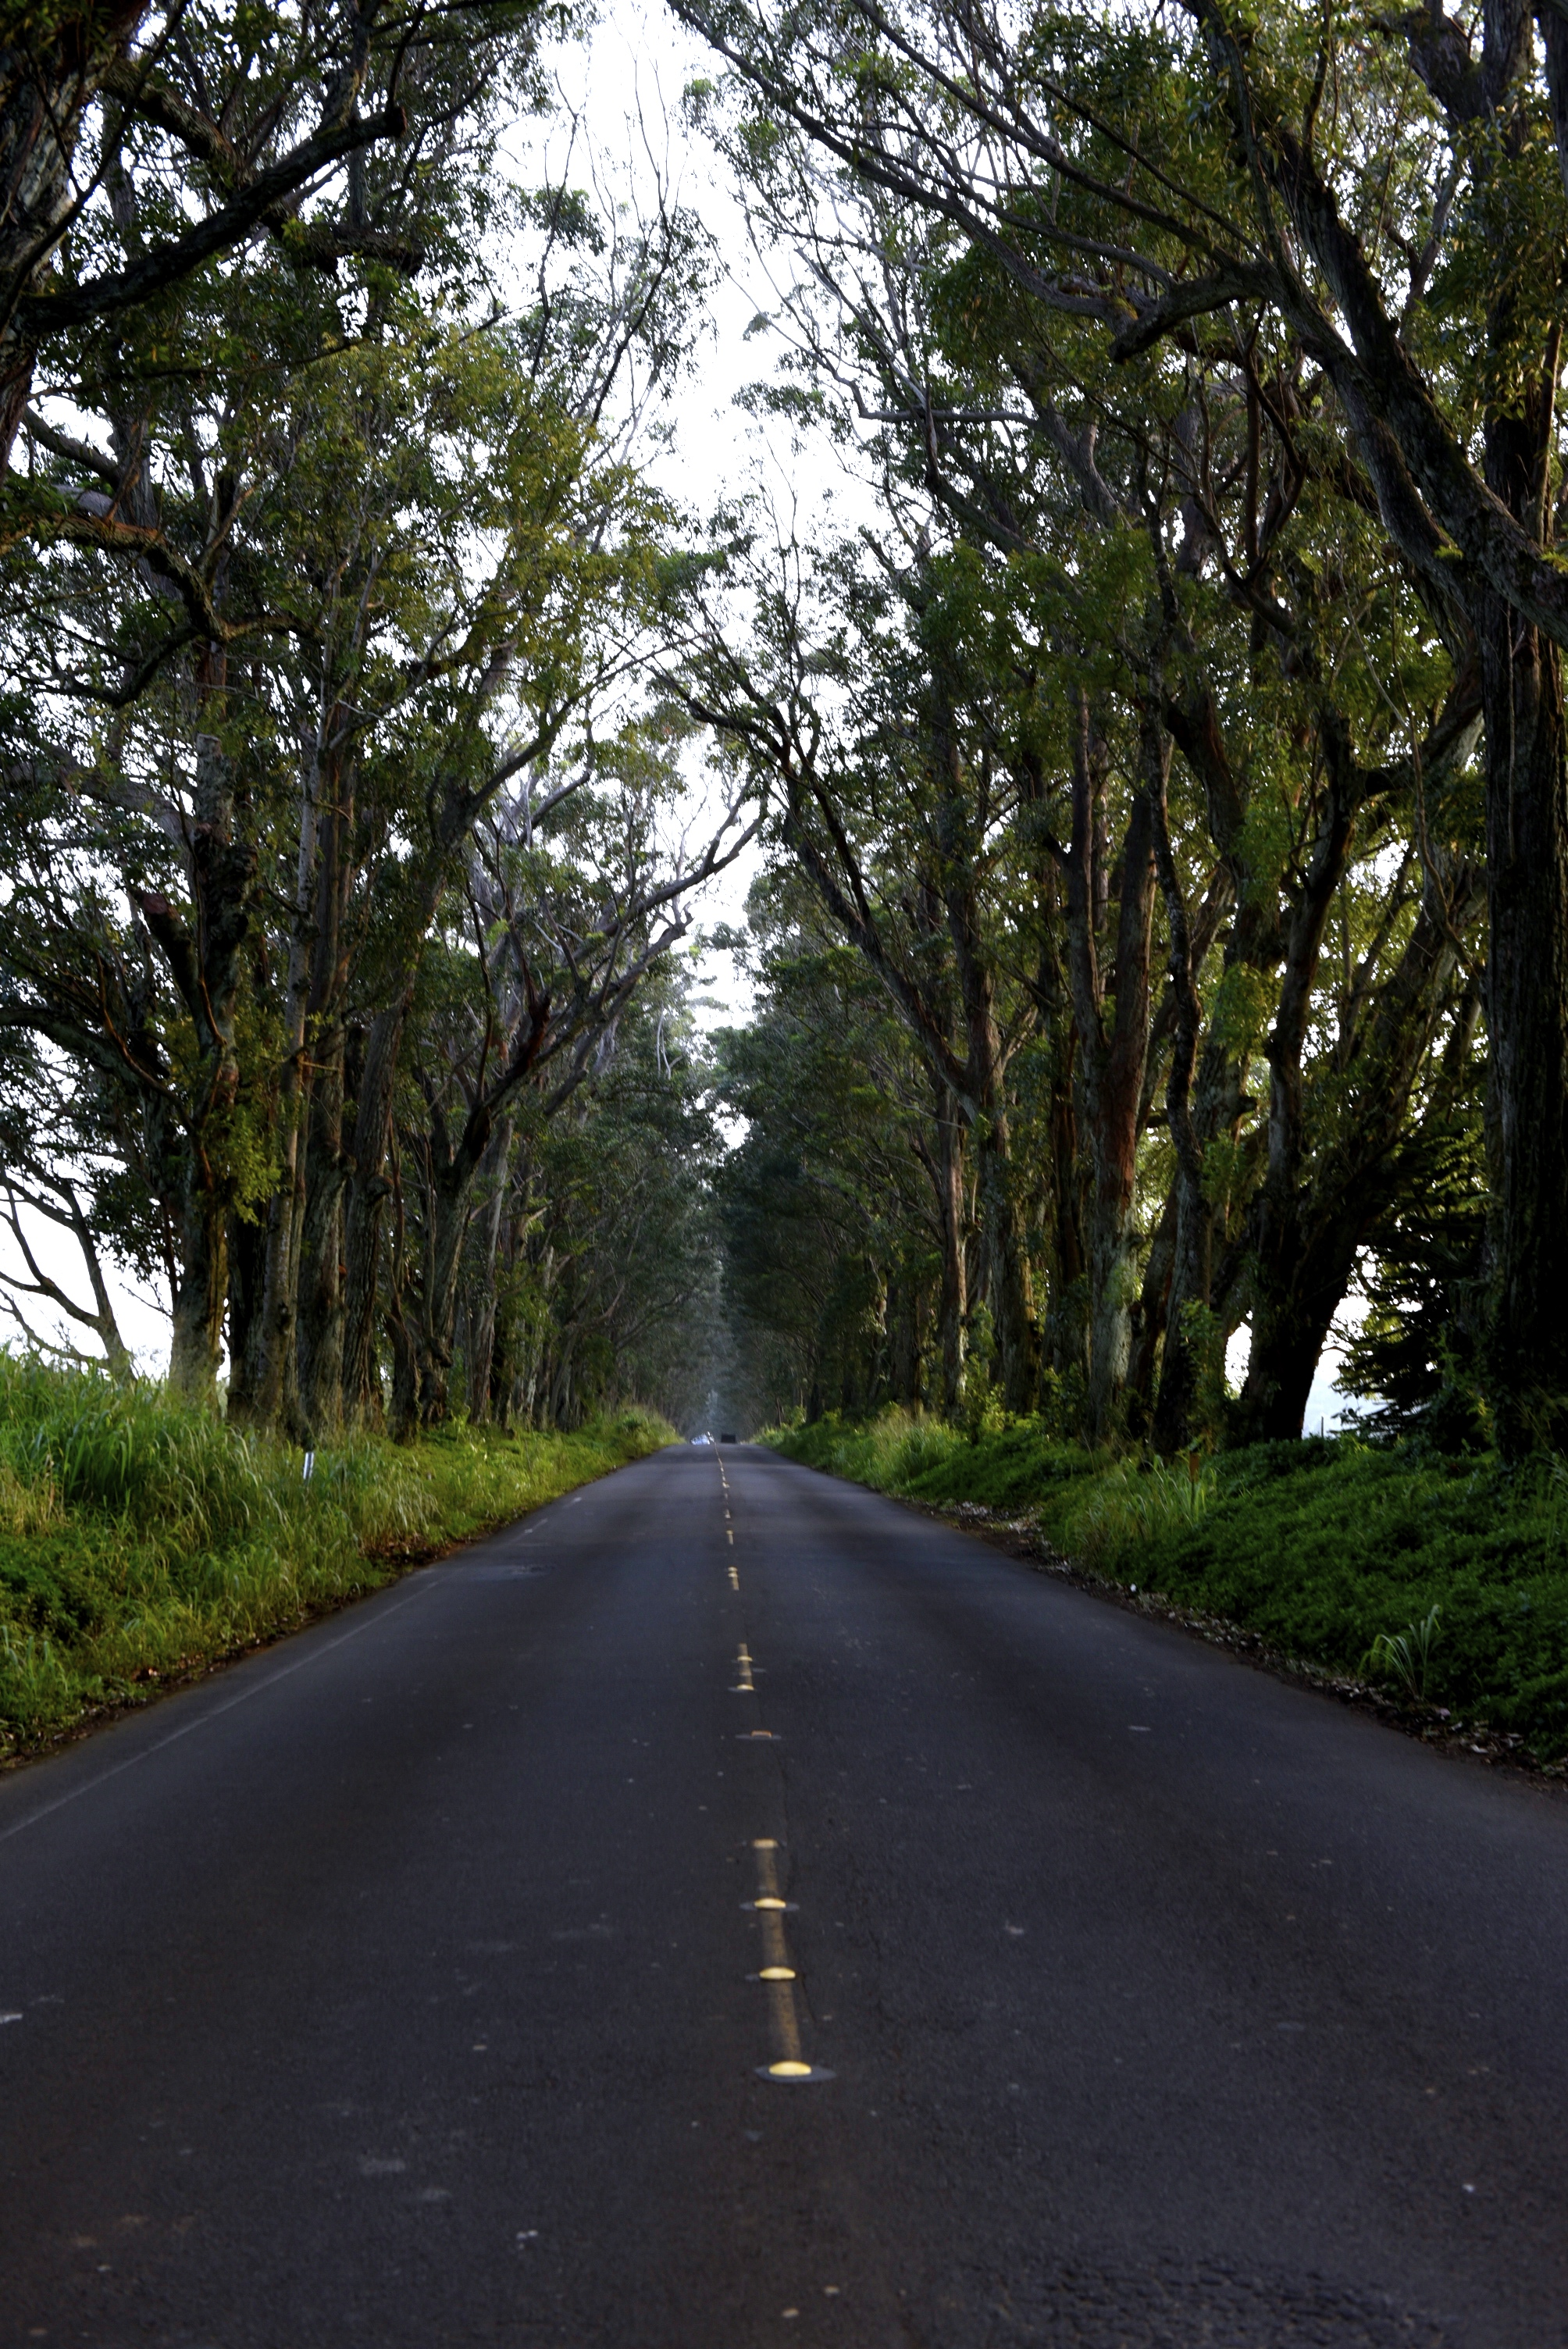 """""""The Tree Tunnel"""" - John Wayne, in the movie Donovan's Reef, races a jeep though this eucalyptus lined road."""